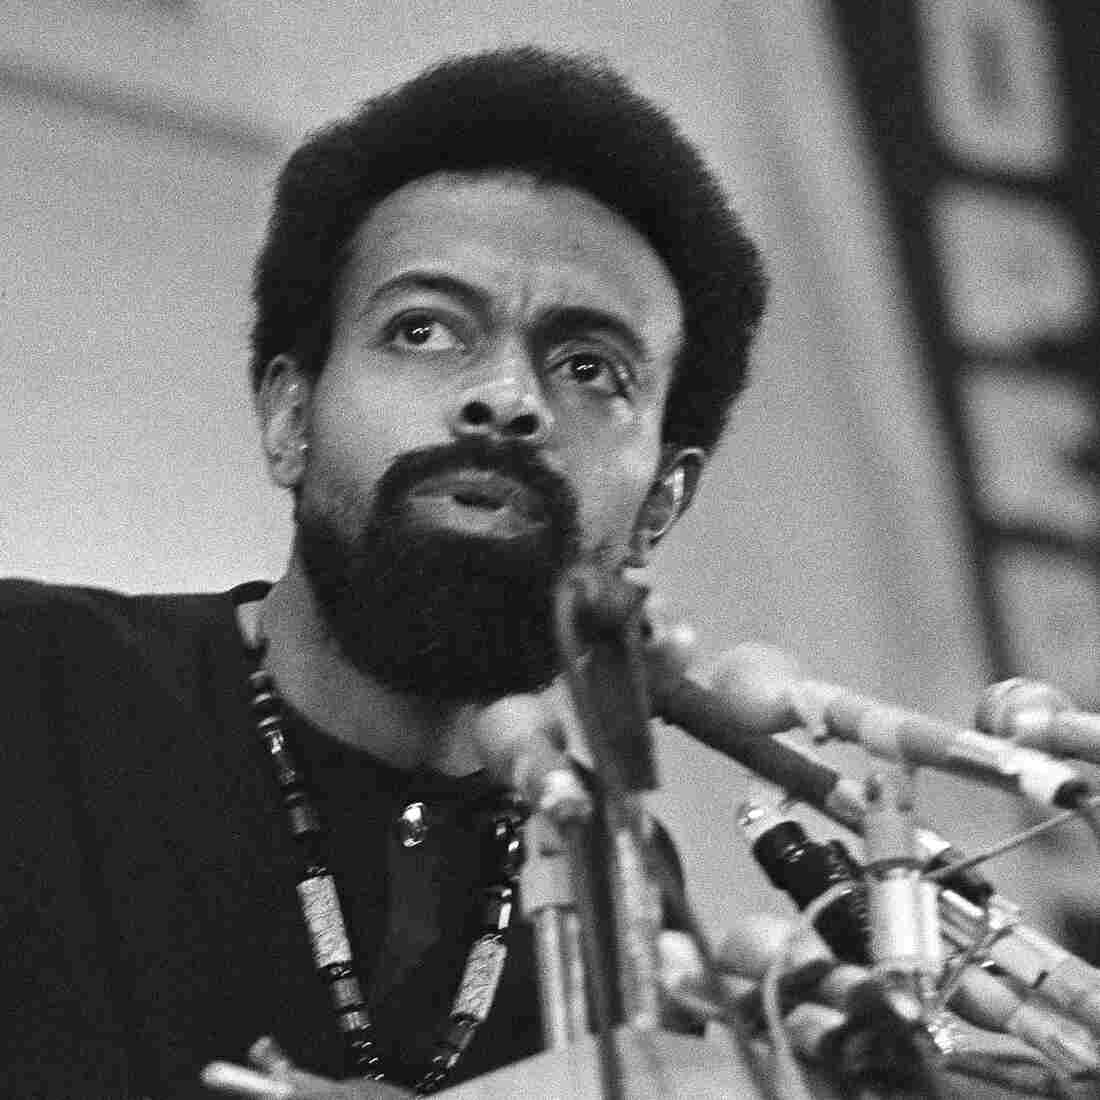 Amiri Baraka's Legacy Both Controversial And Achingly Beautiful